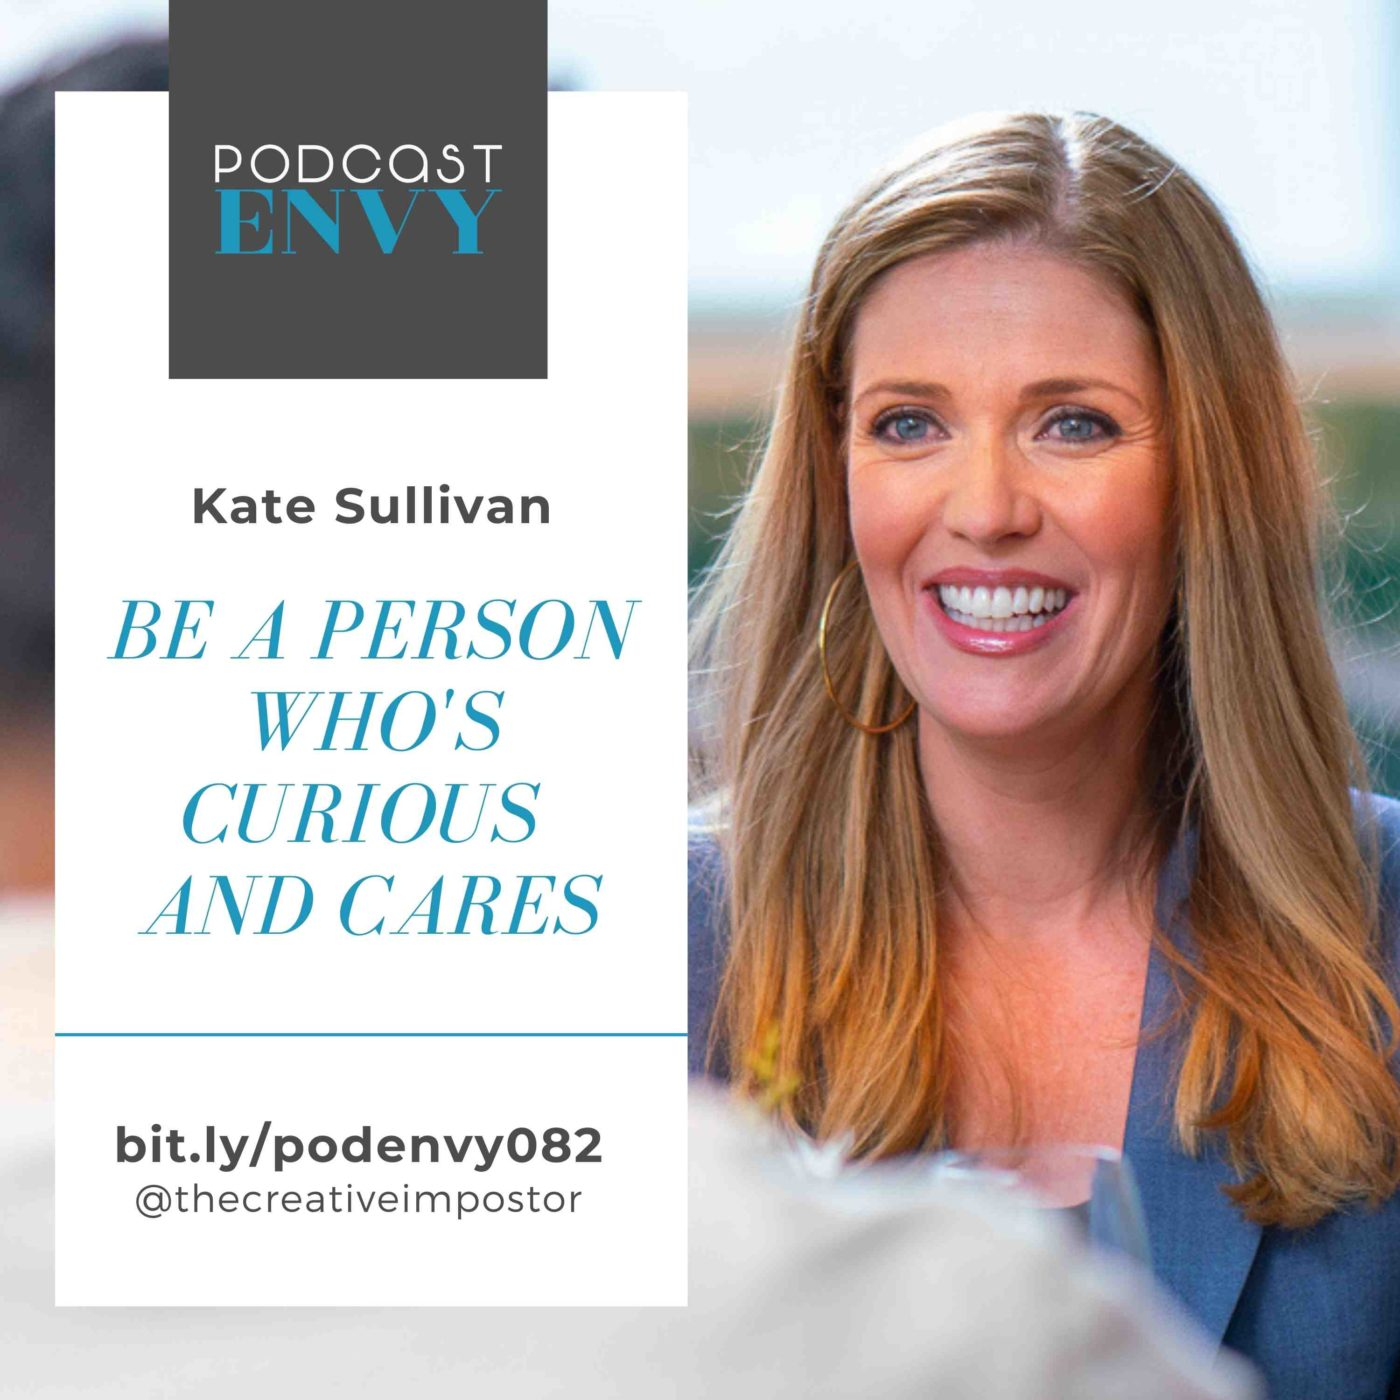 PE082: Be a person who's curious and cares, Kate Sullivan